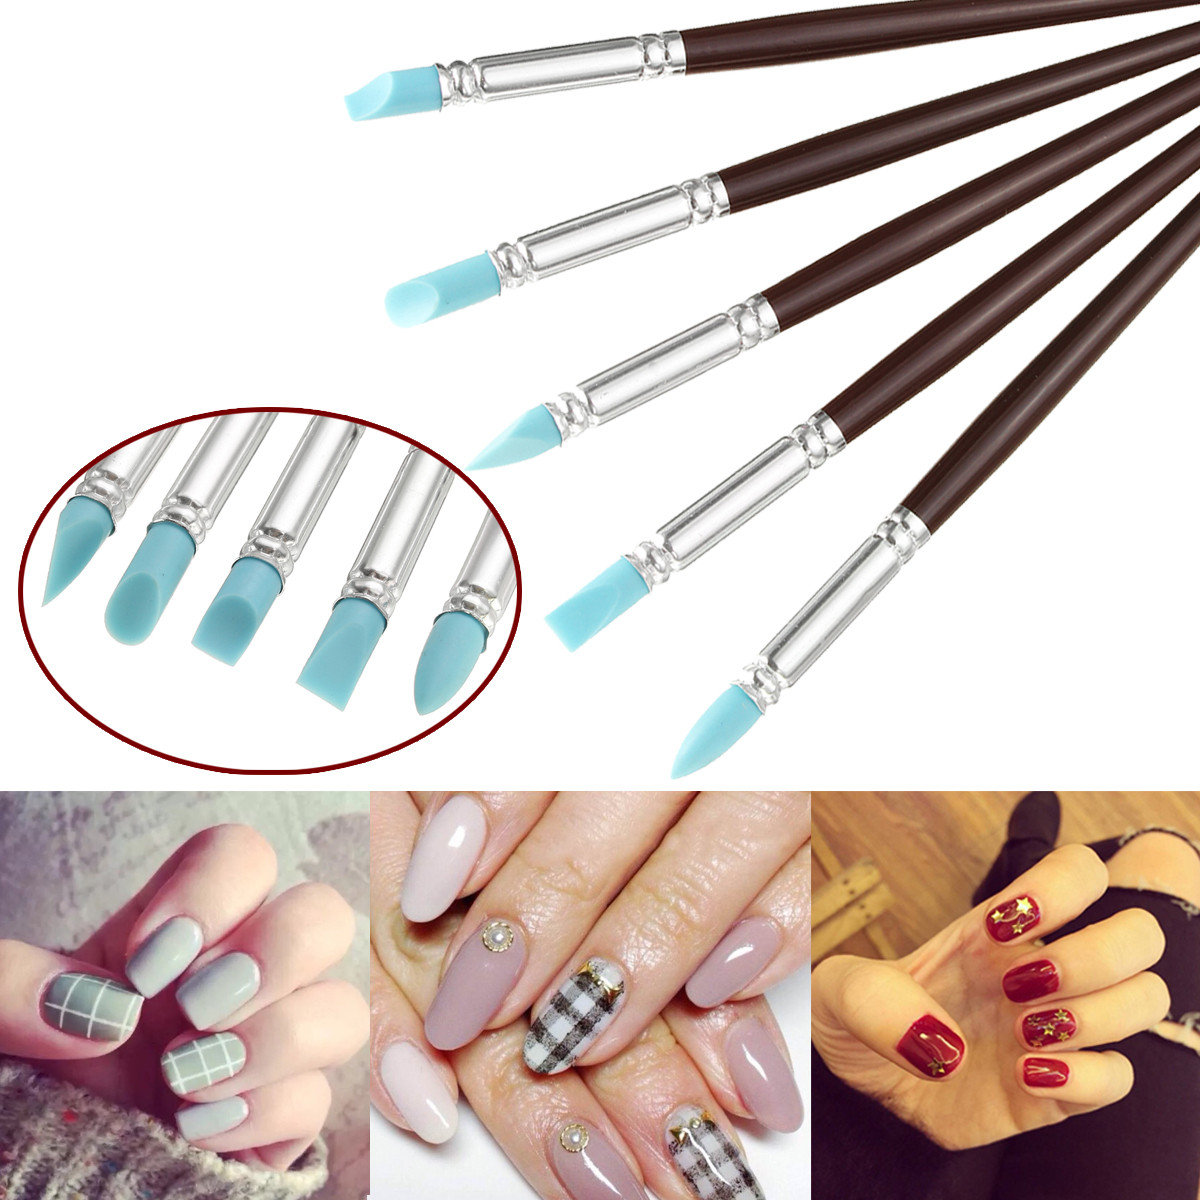 5Pcs/Kit Silicone Rubber Nail Art Pen Pottery Clay Carving Sculpture Dotting Tools